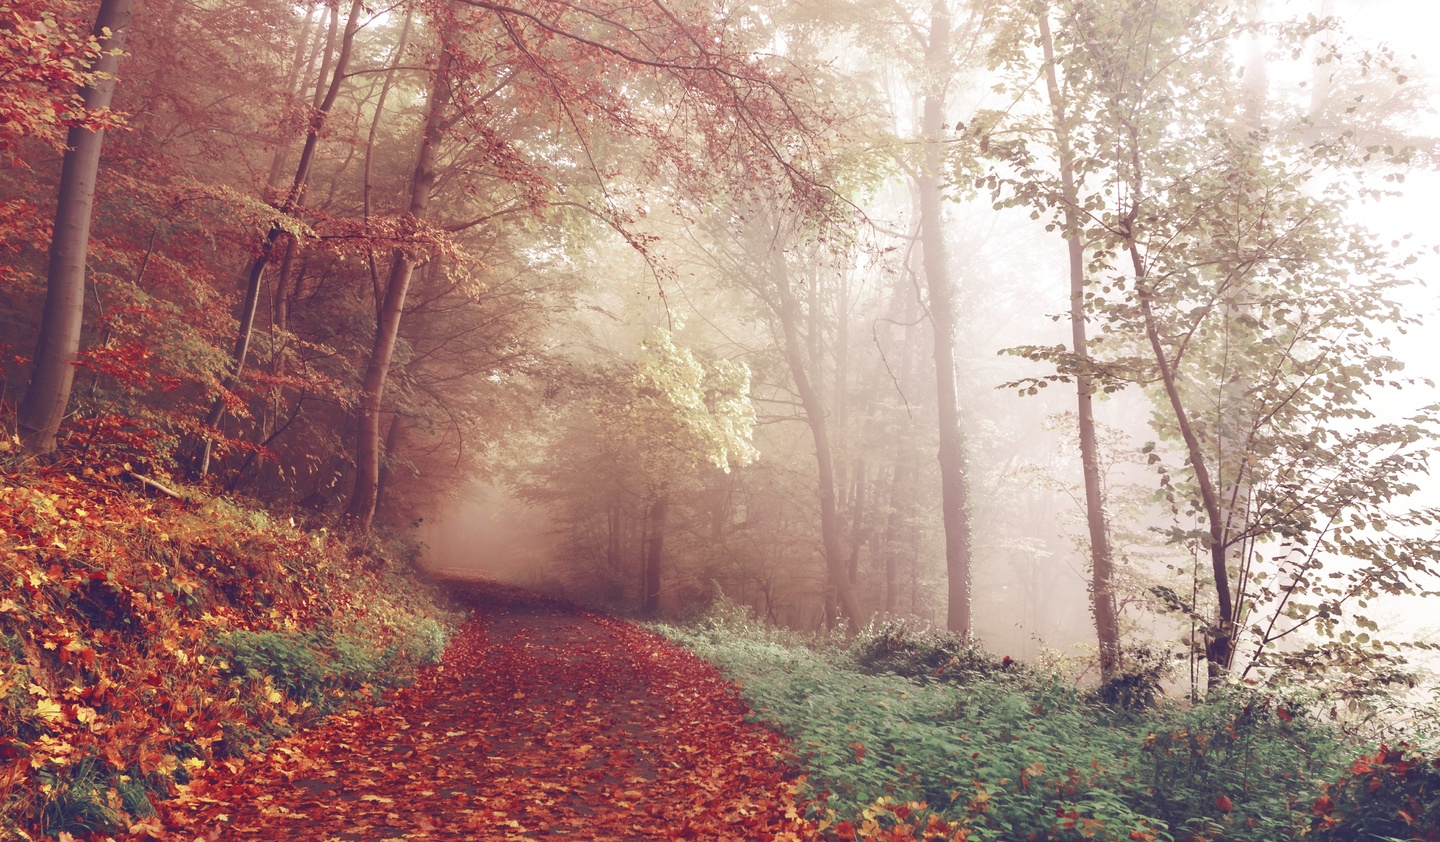 tree-nature-forest-path-plant-mist-21939-pxhere.com